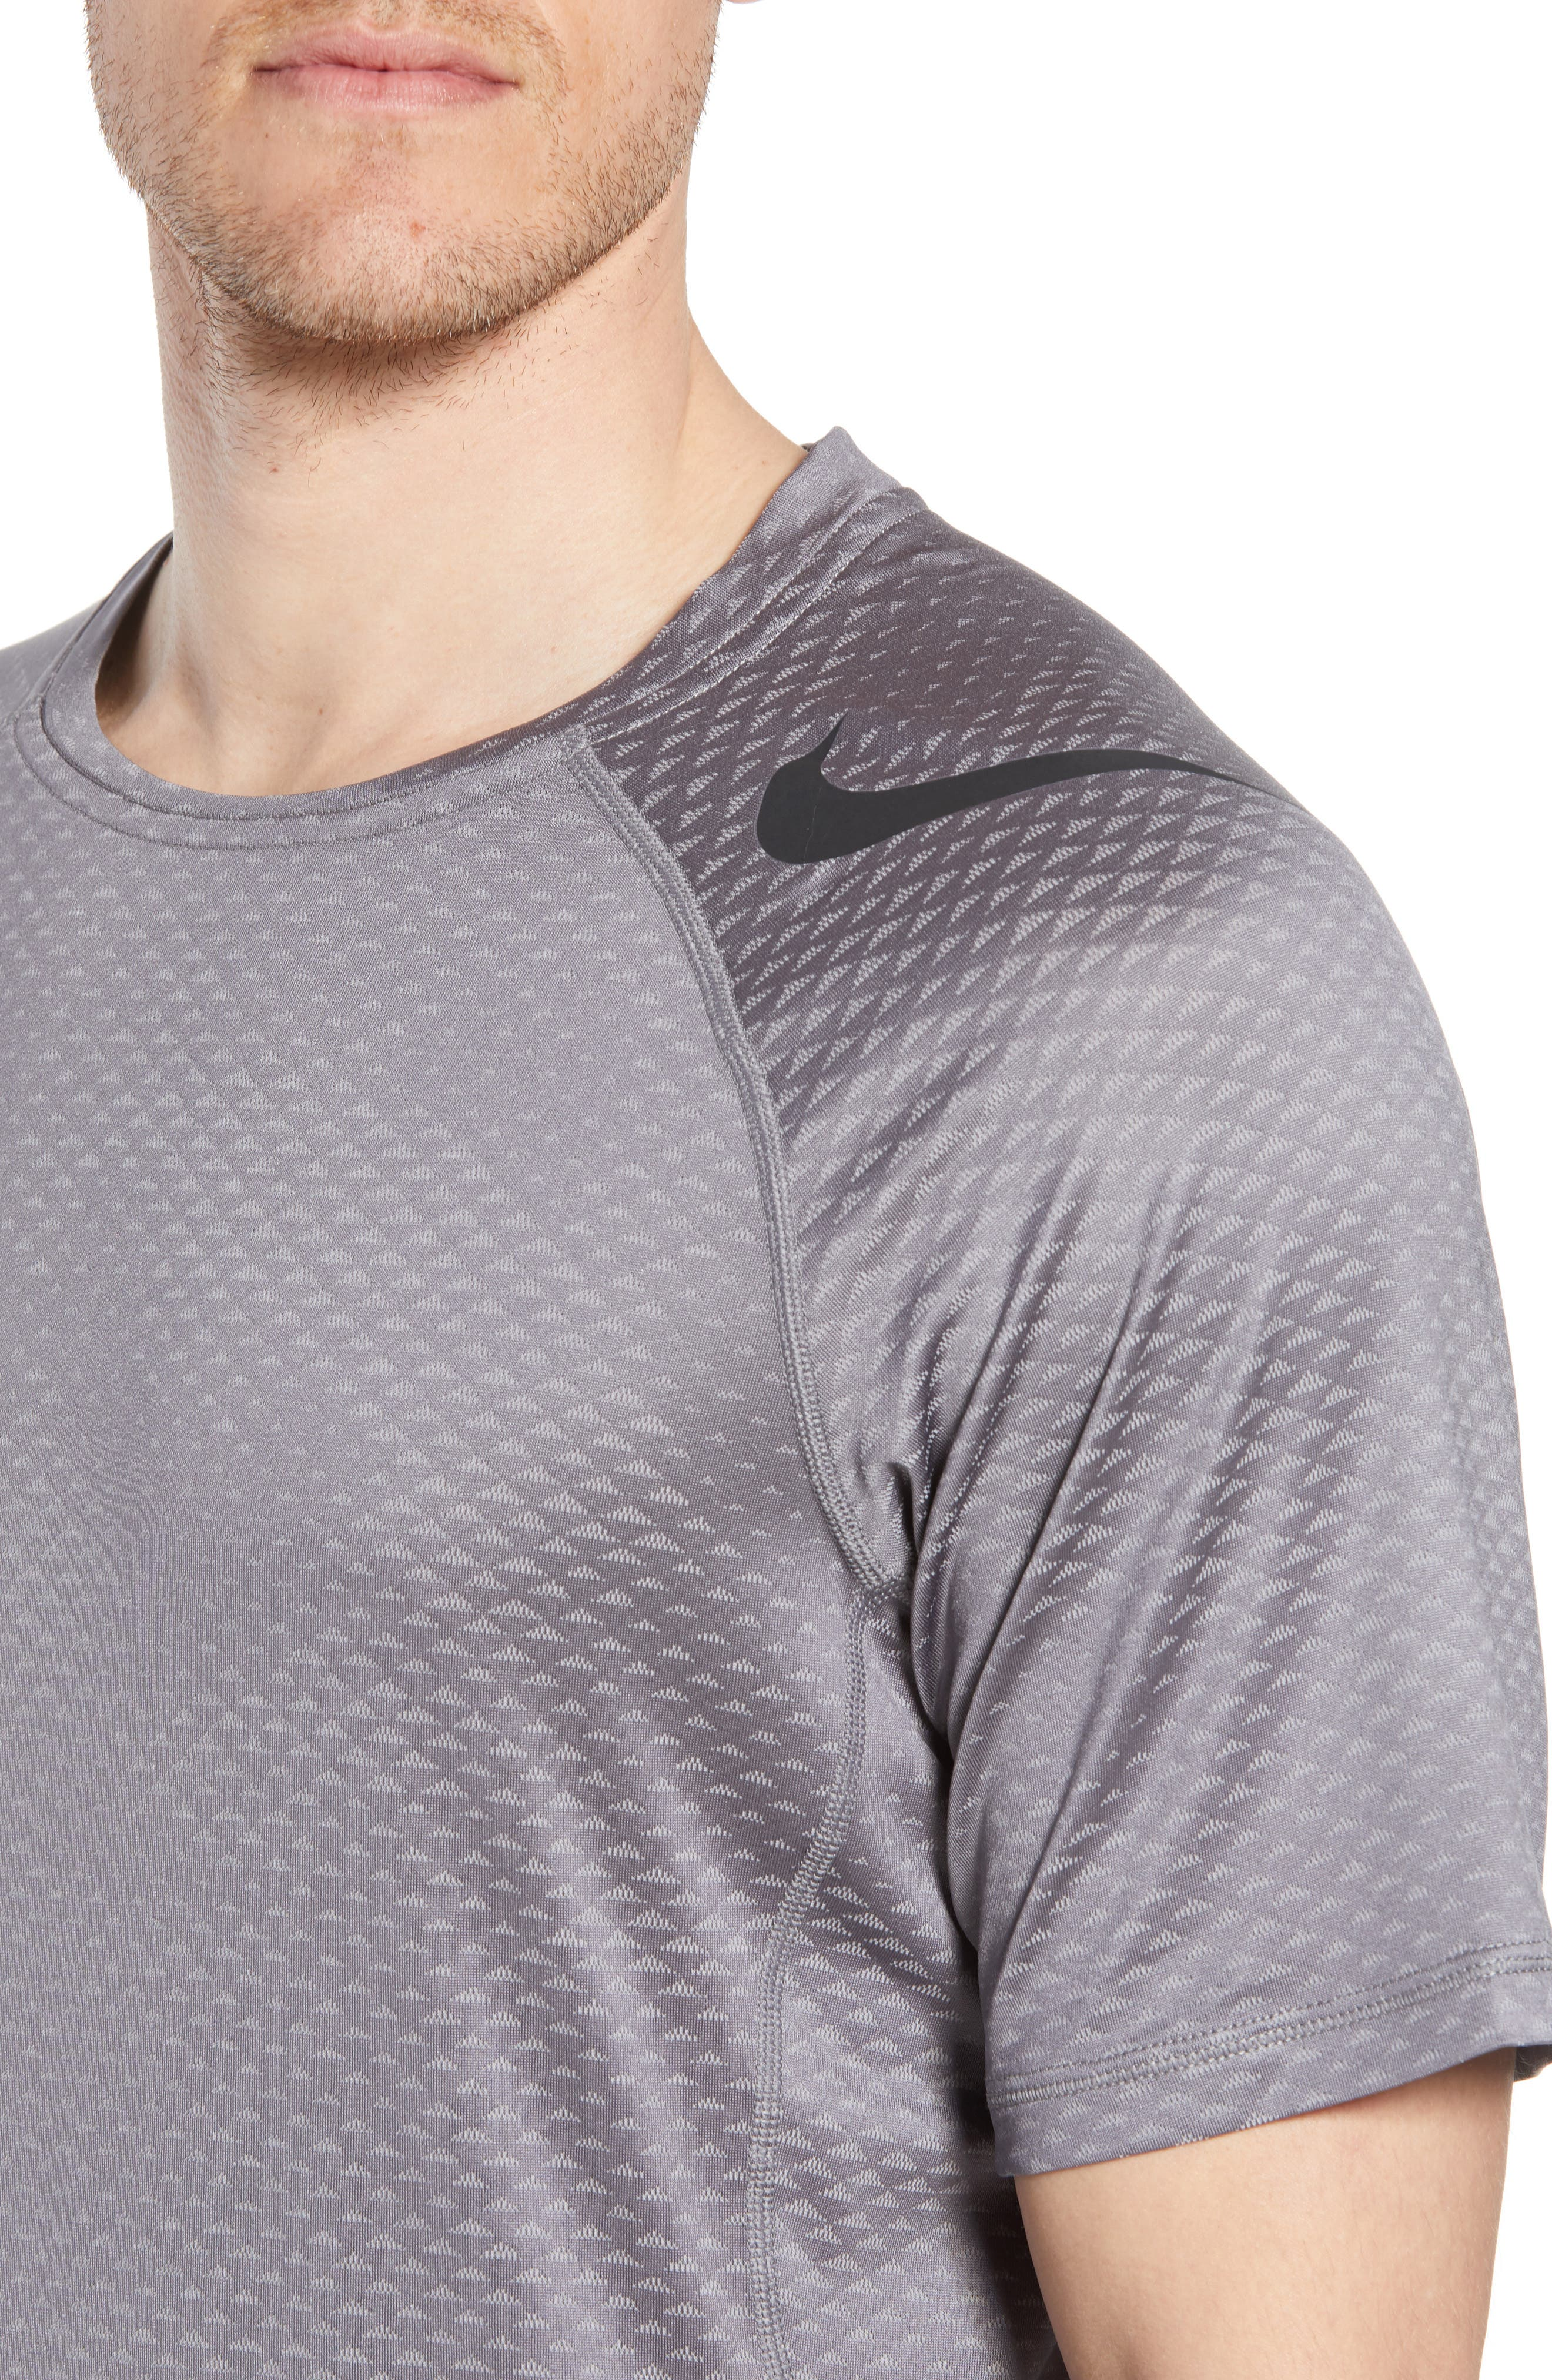 Pro HyperCool Fitted Crewneck T-Shirt,                             Alternate thumbnail 4, color,                             Atmosphere Grey/ Black